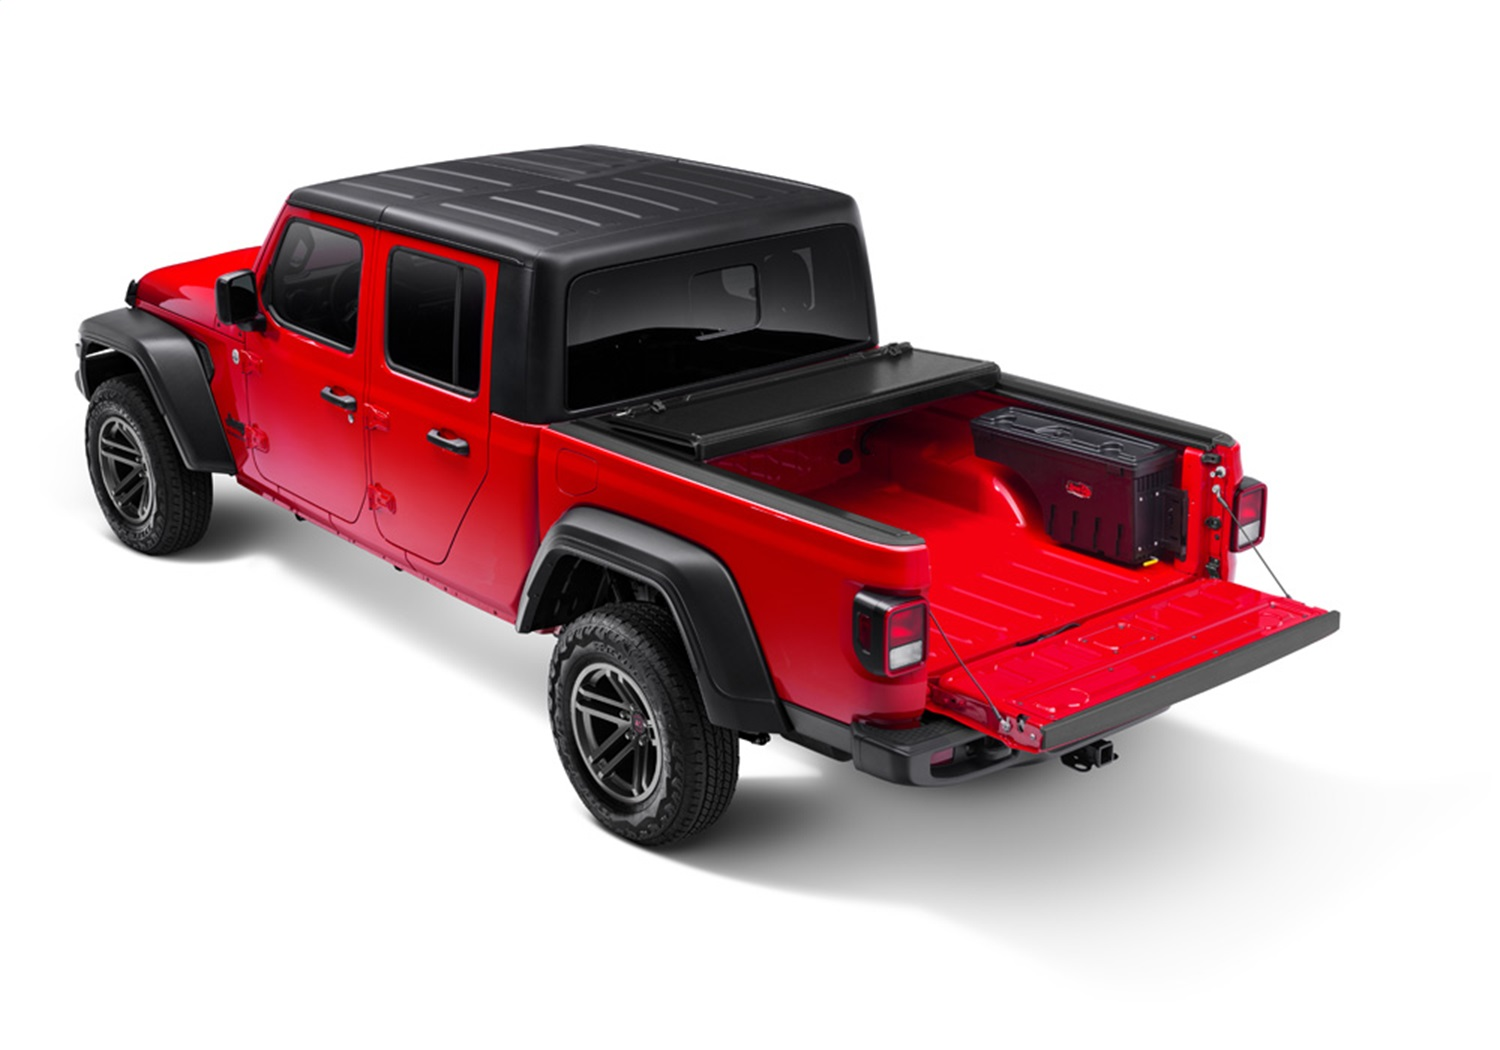 An undercover Swingcase mounted on the Passenger Side truck bed of the Jeep Gladiator